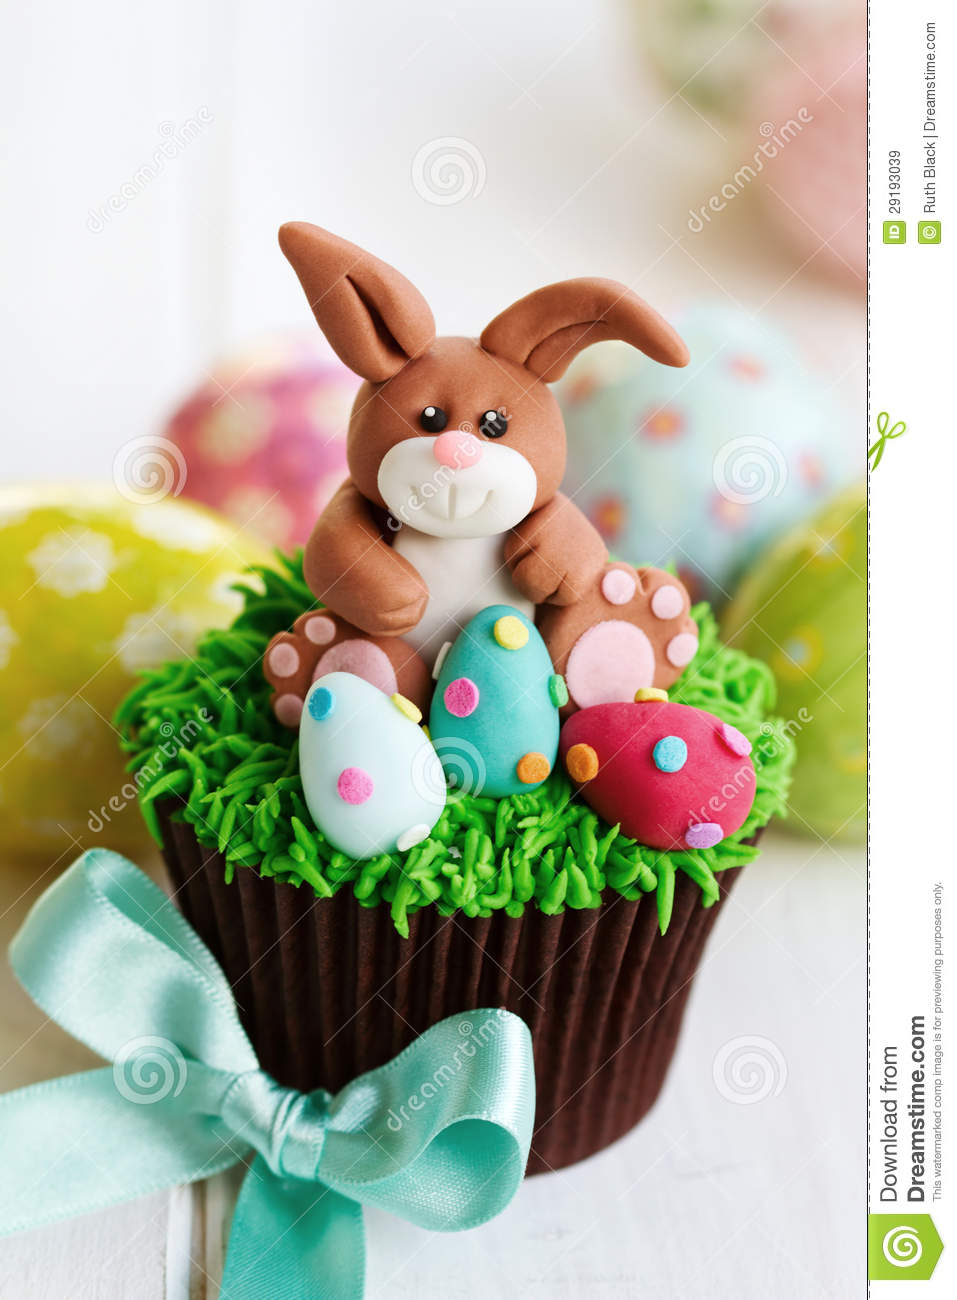 Easter Bunny Cupcake Royalty Free Stock Images - Image: 29193039